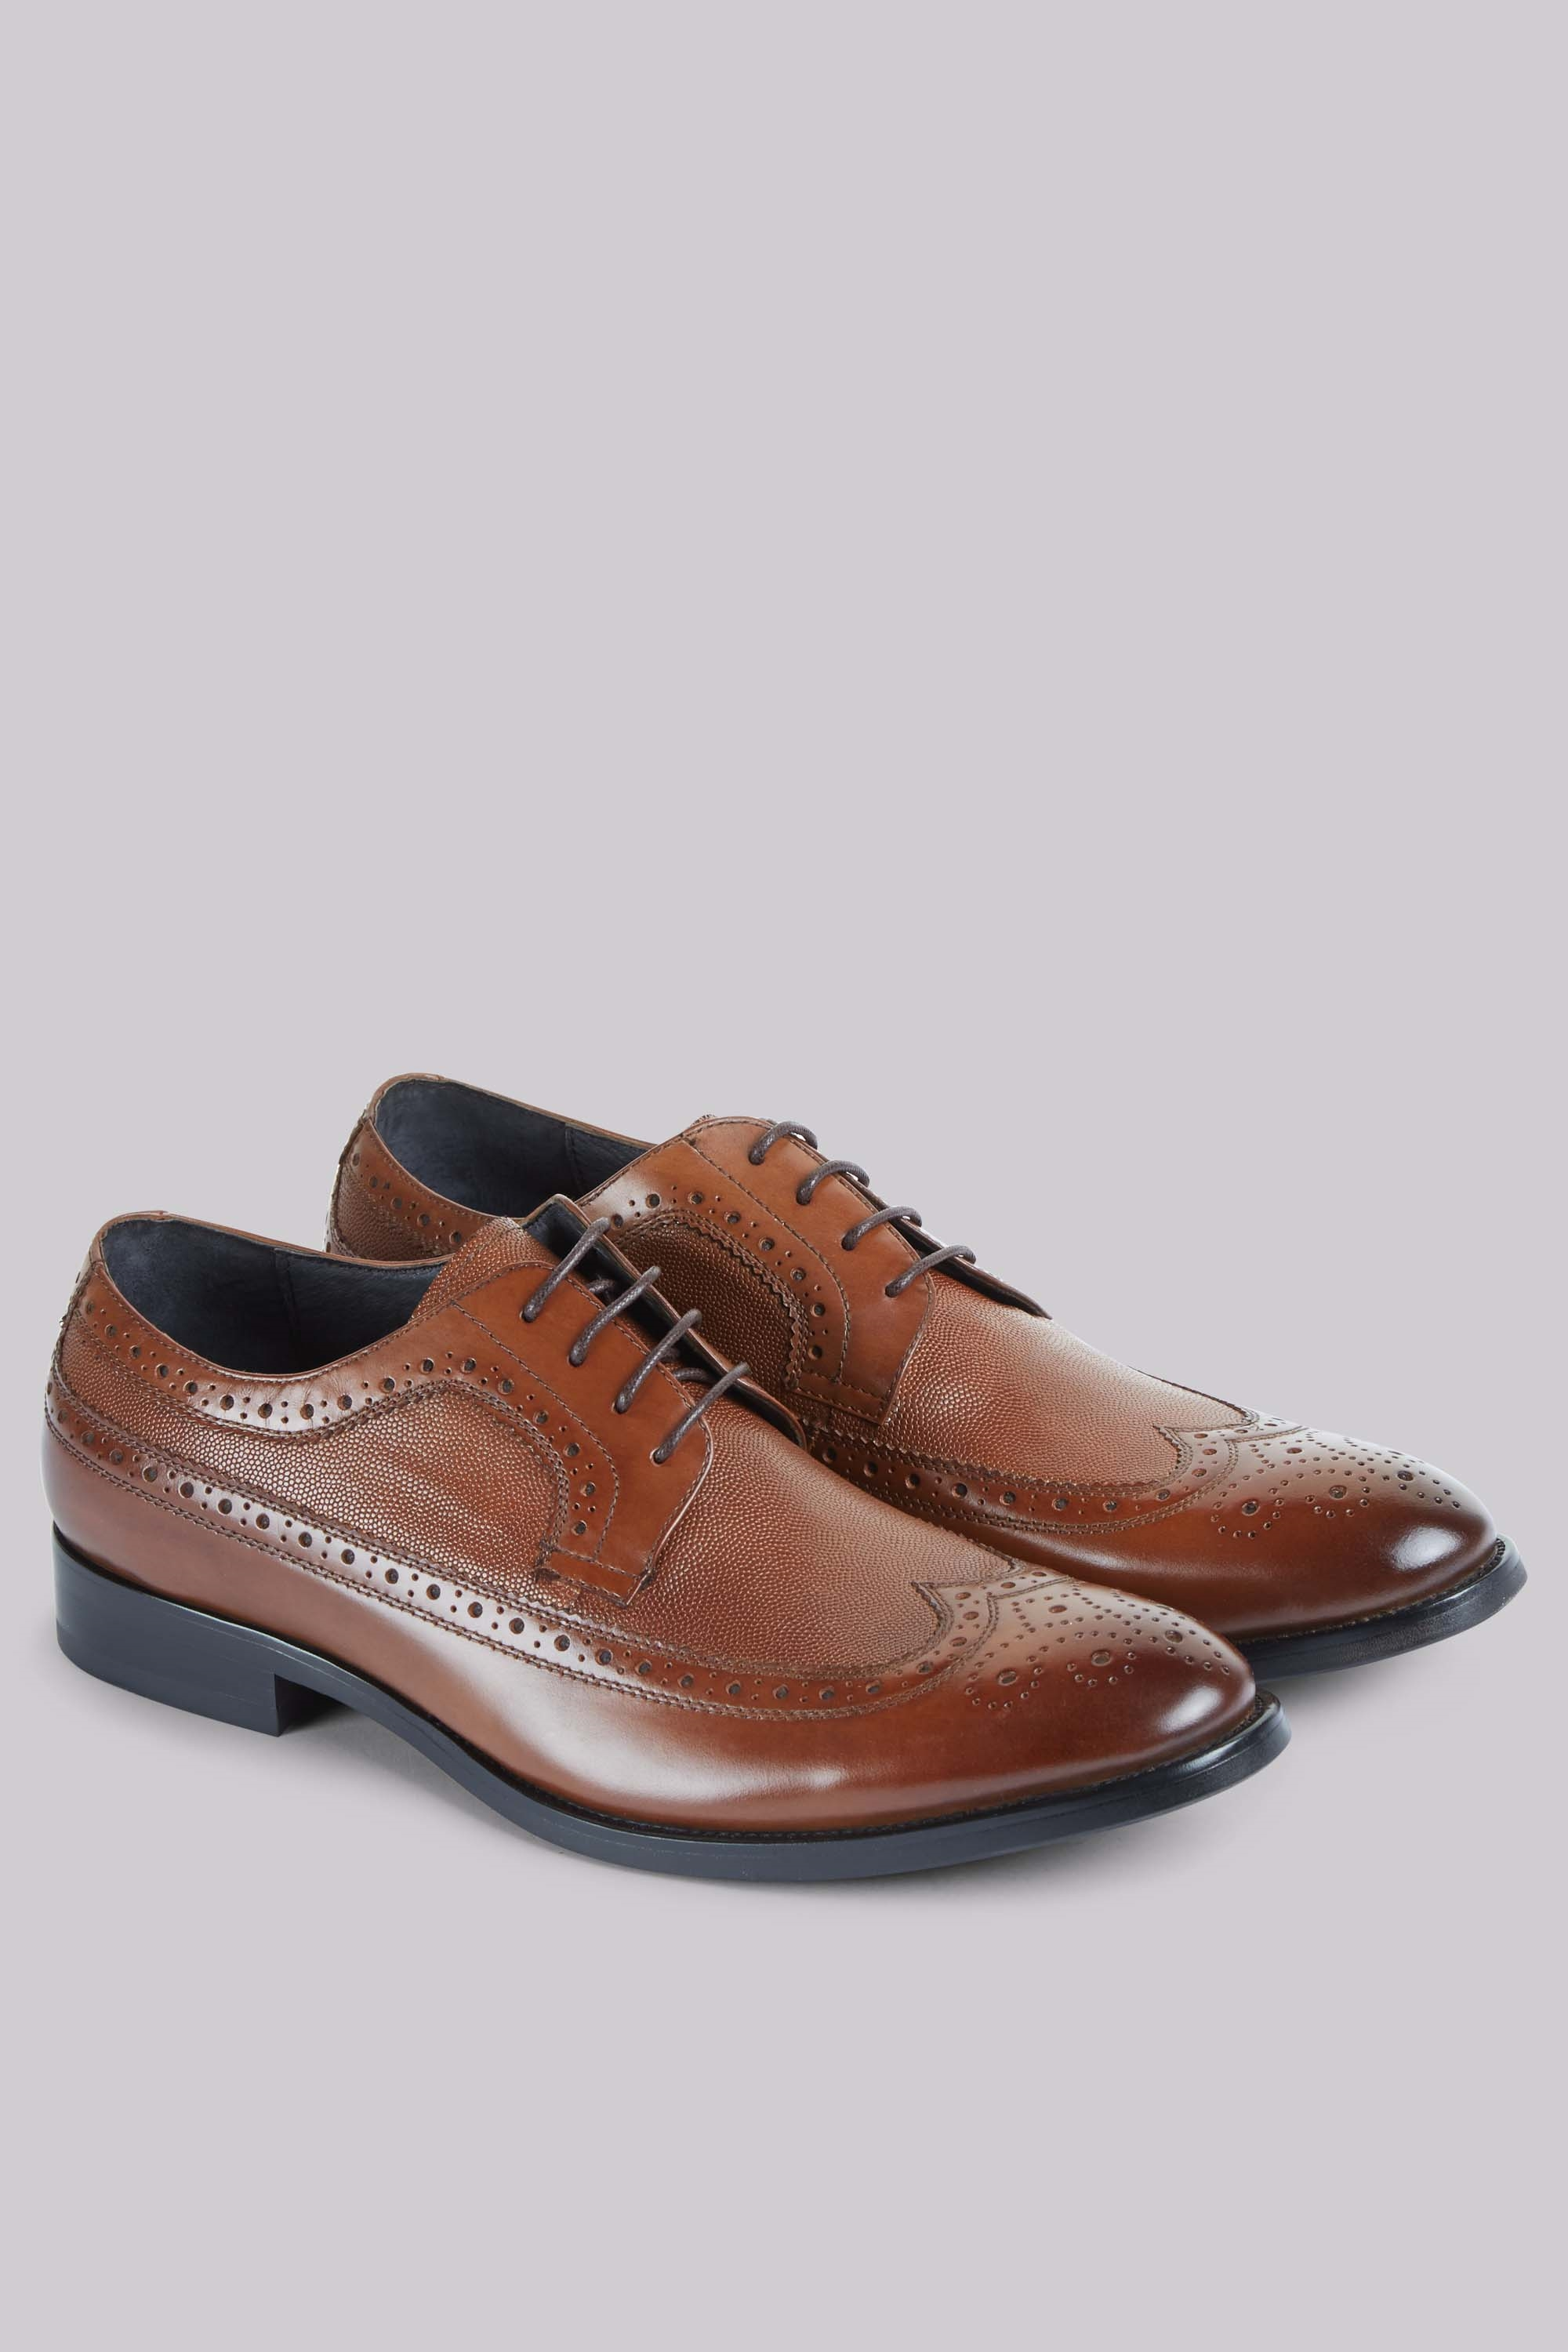 white mens brown oxford shoes textured leather